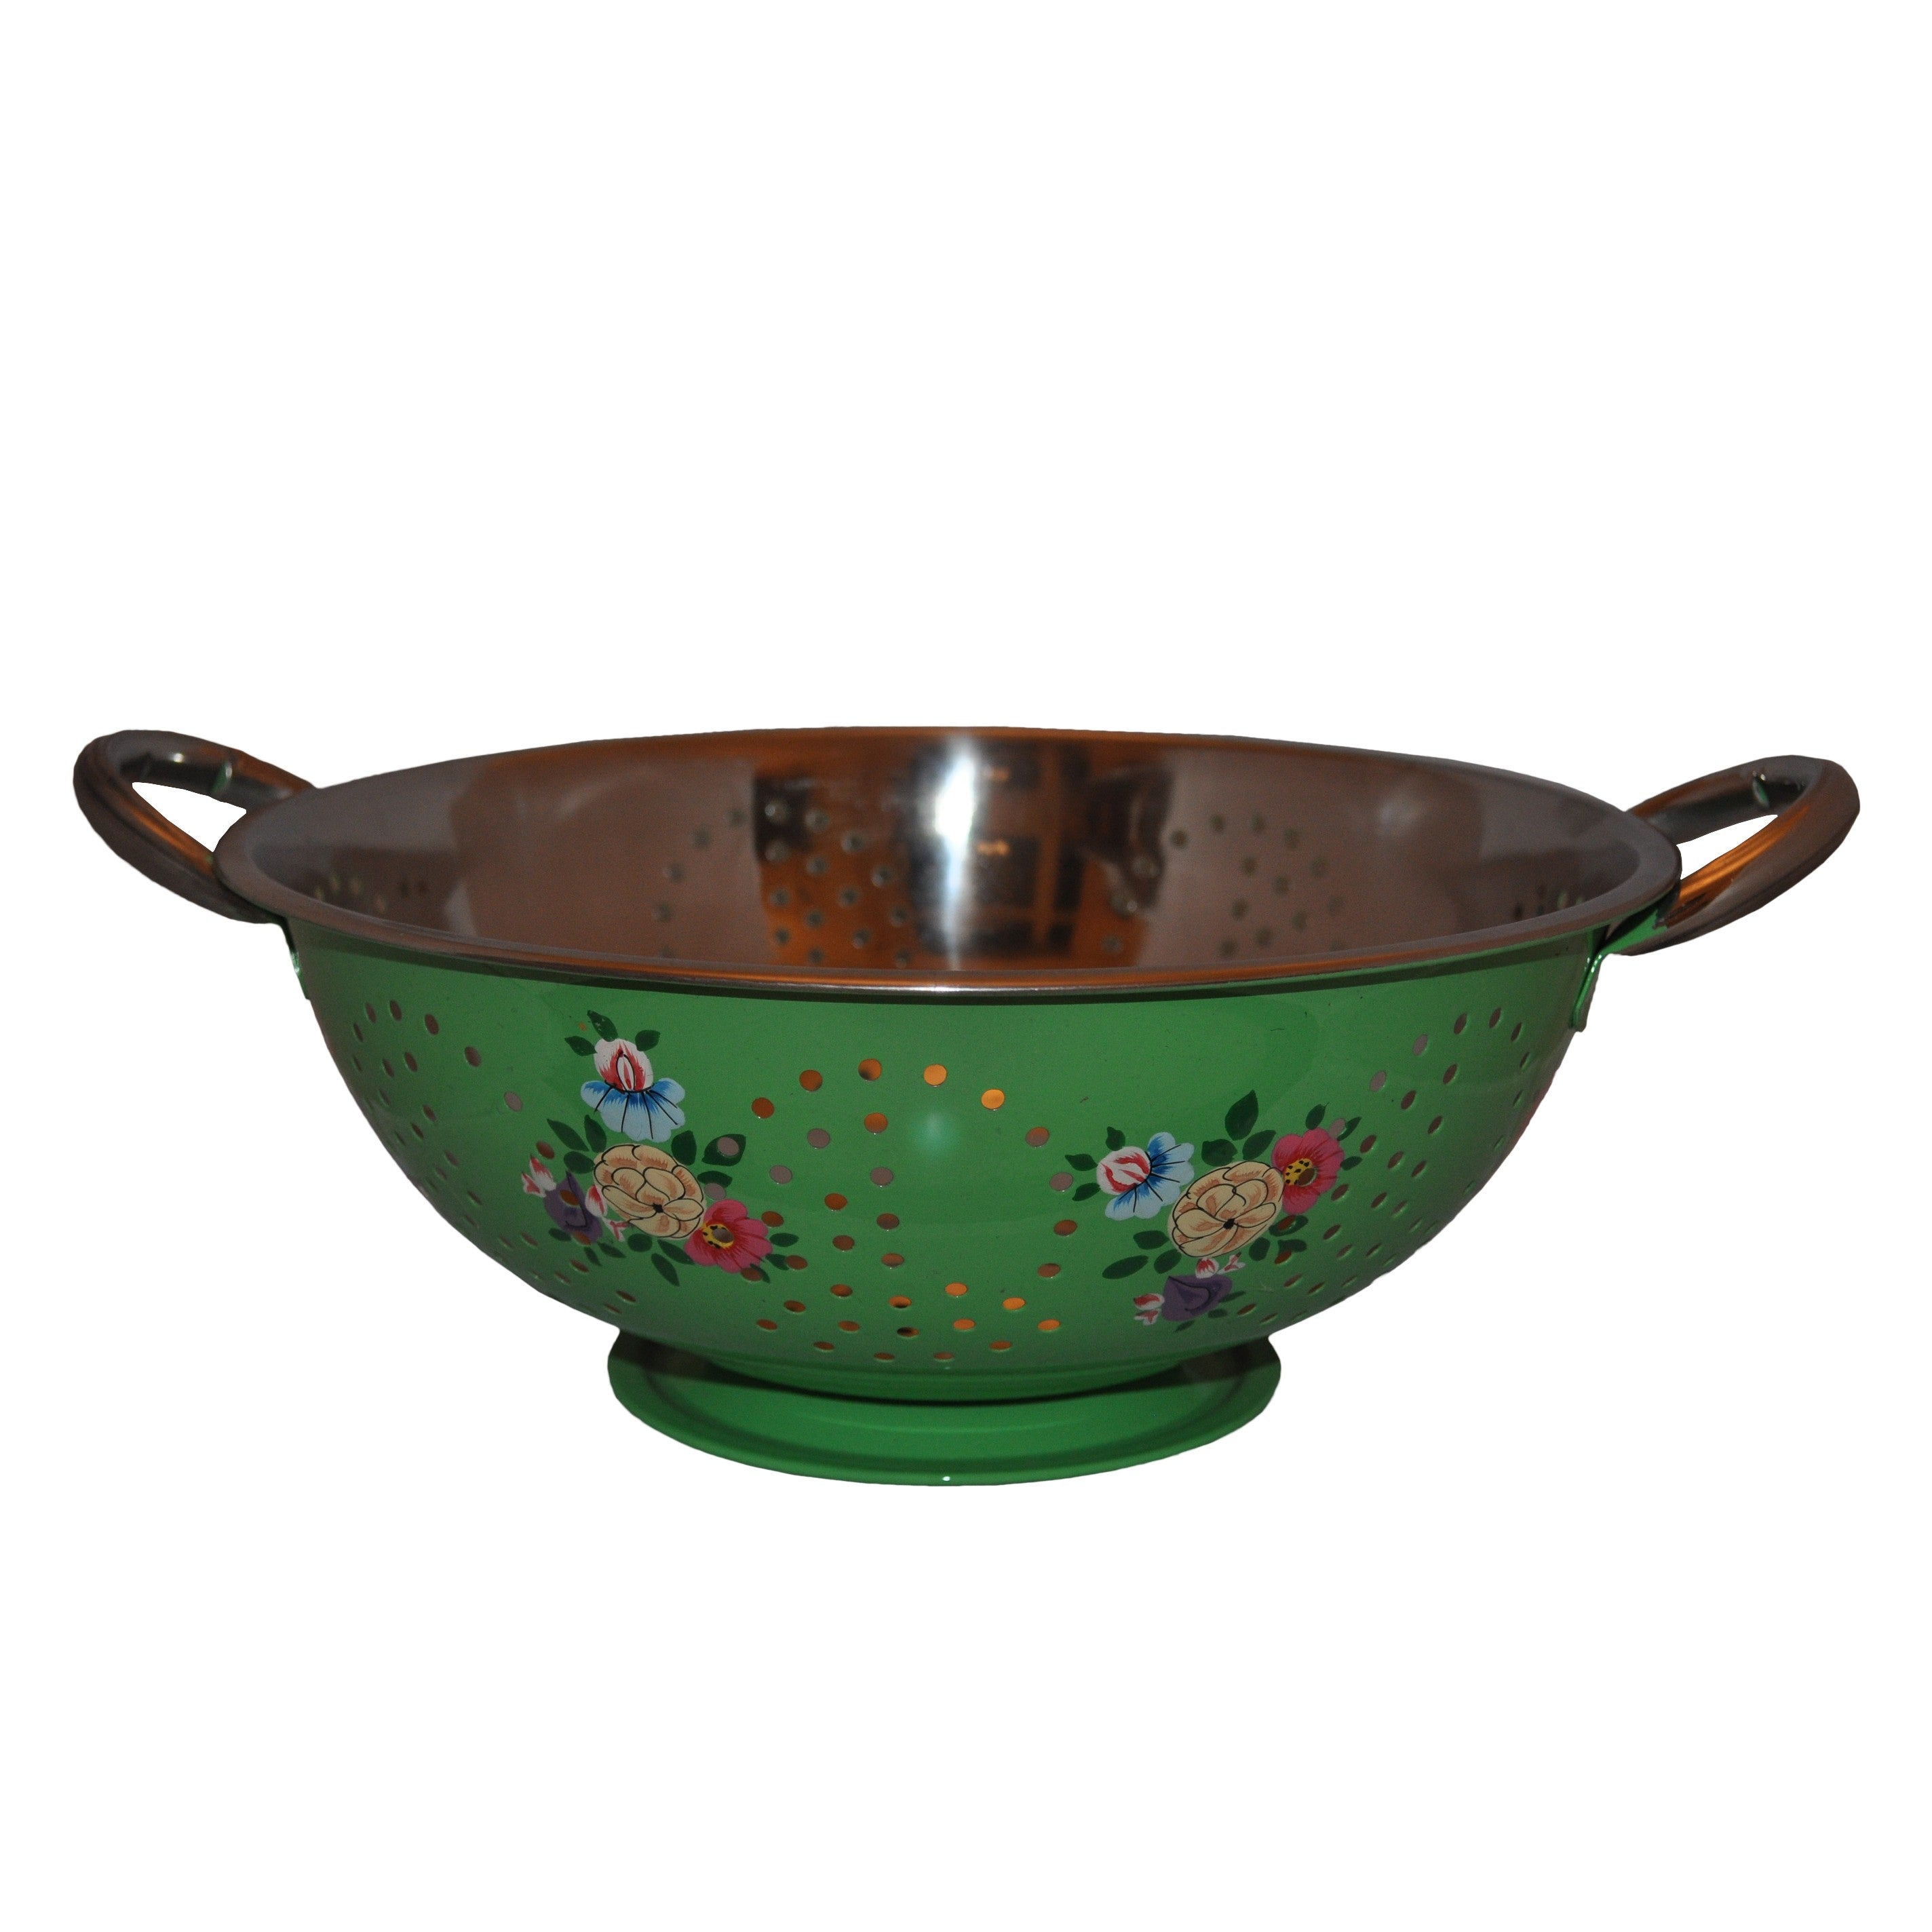 Bright Green Colander by Jasmine White on OOSTOR.com